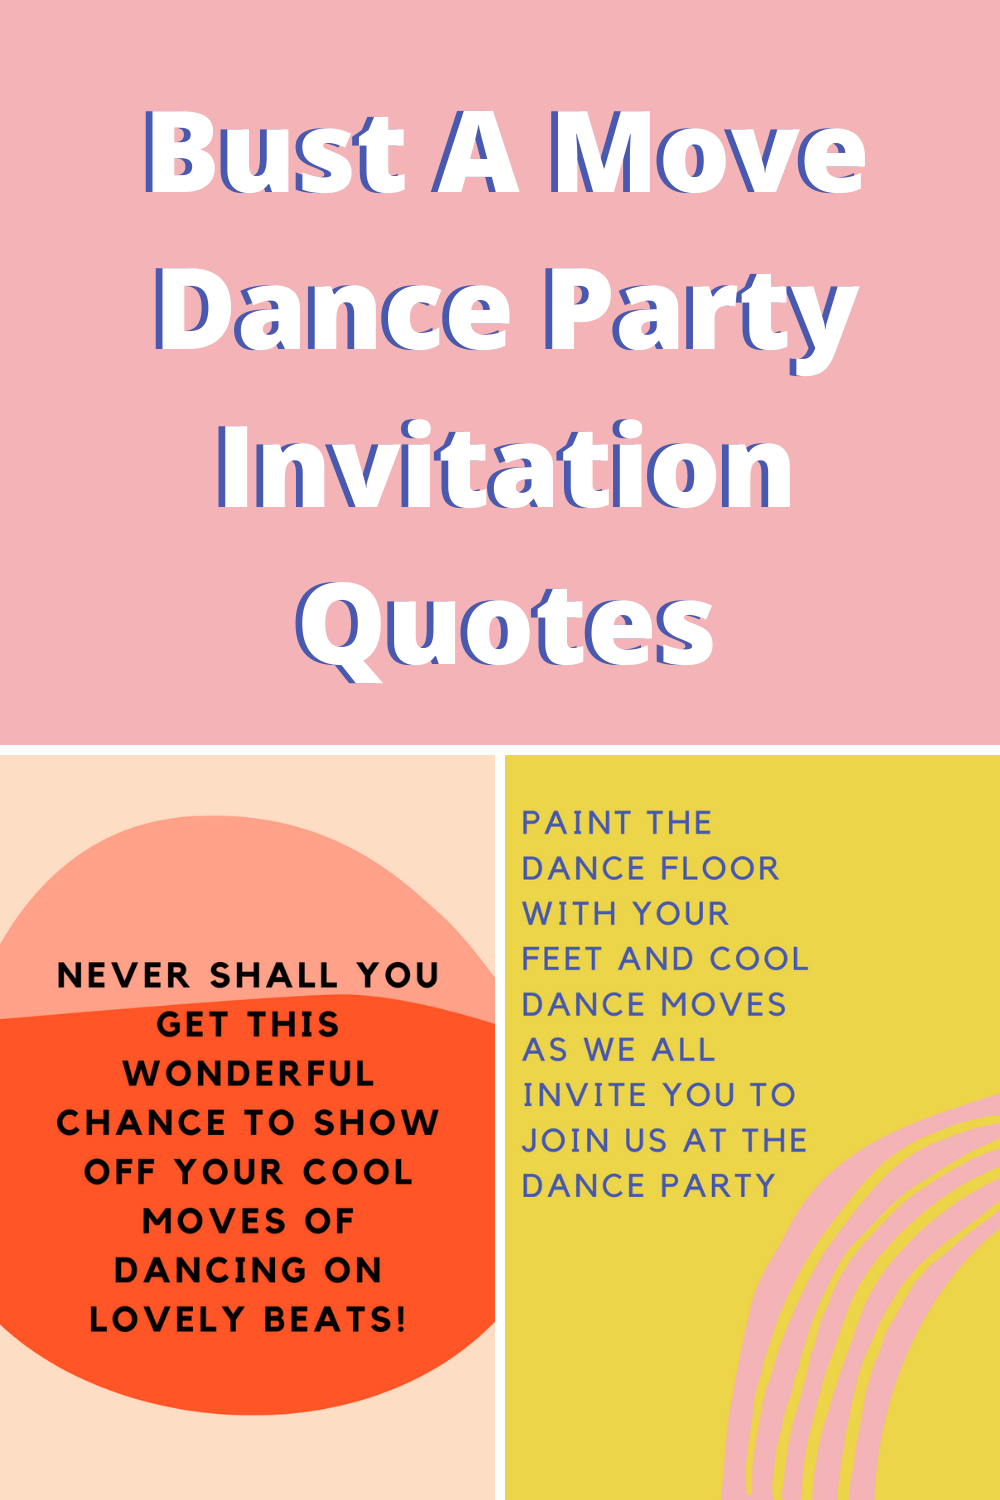 Dance Party Invitation Quotes